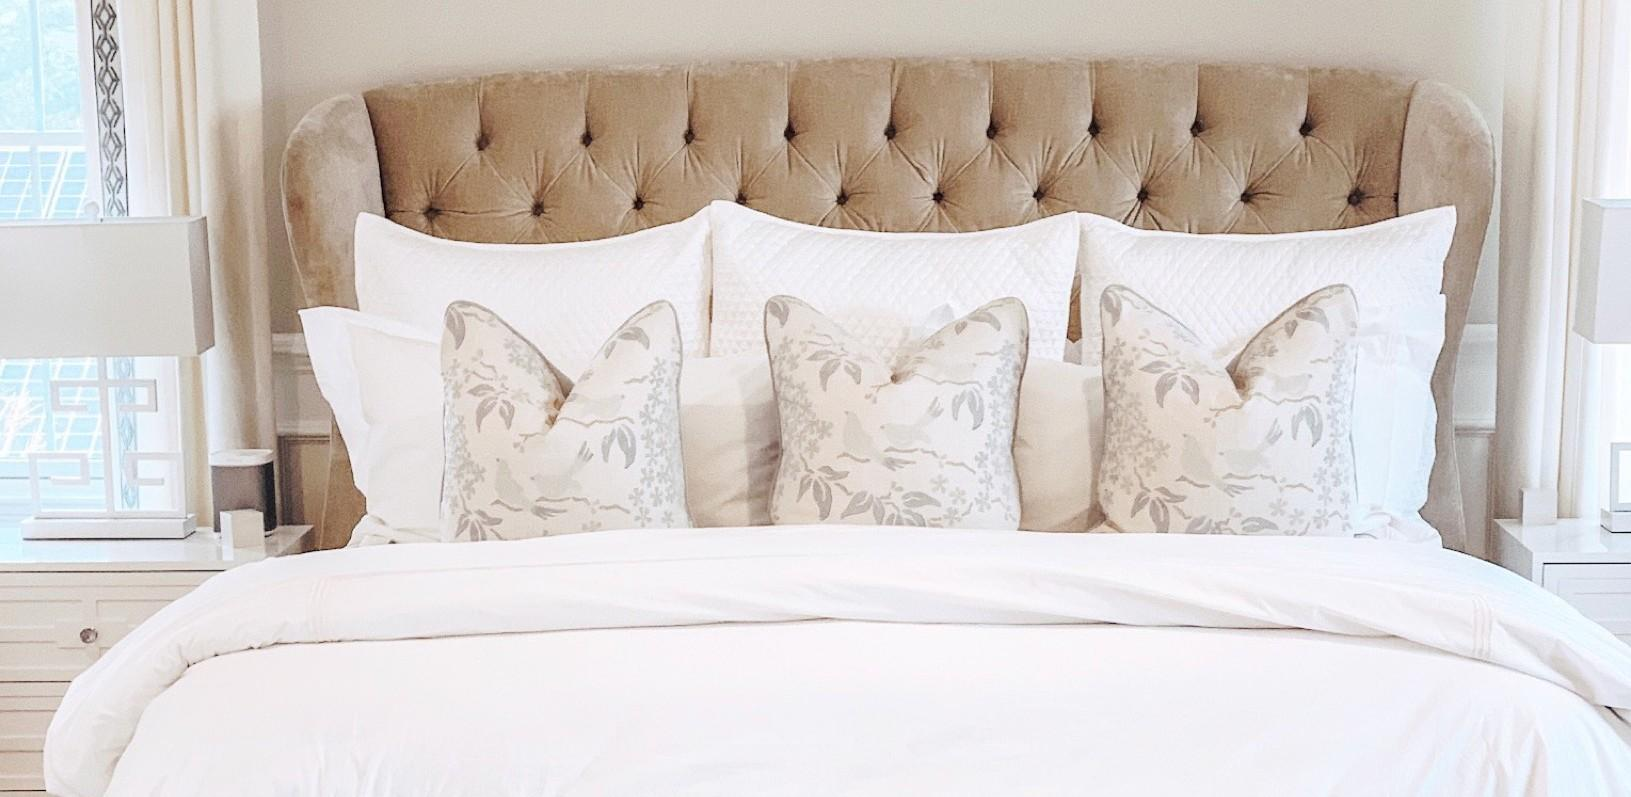 High-end, made bed with neutral colored throw pillows.